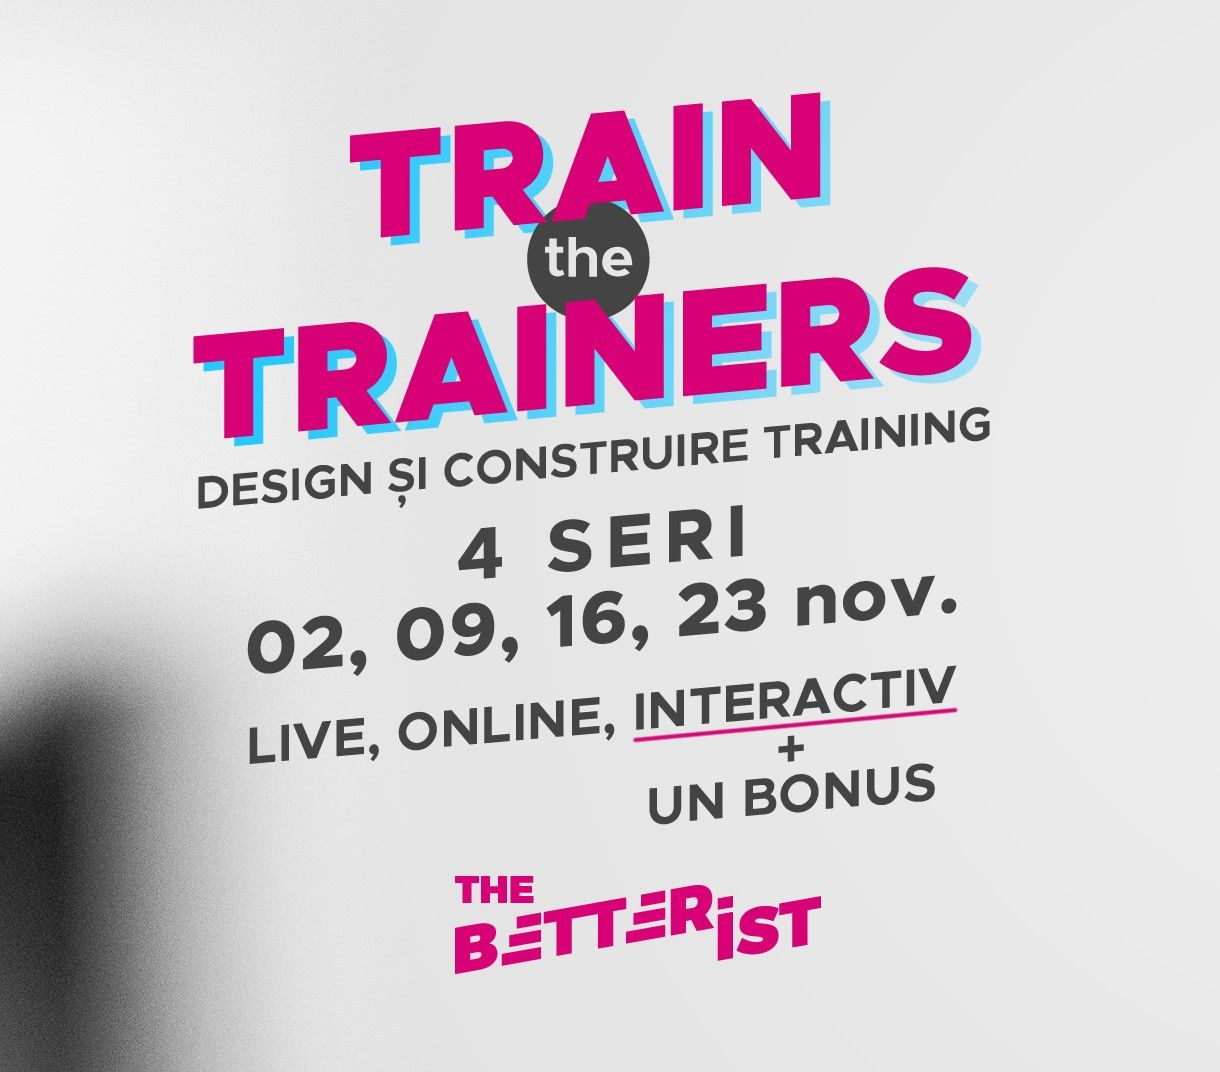 train the trainers online 3`